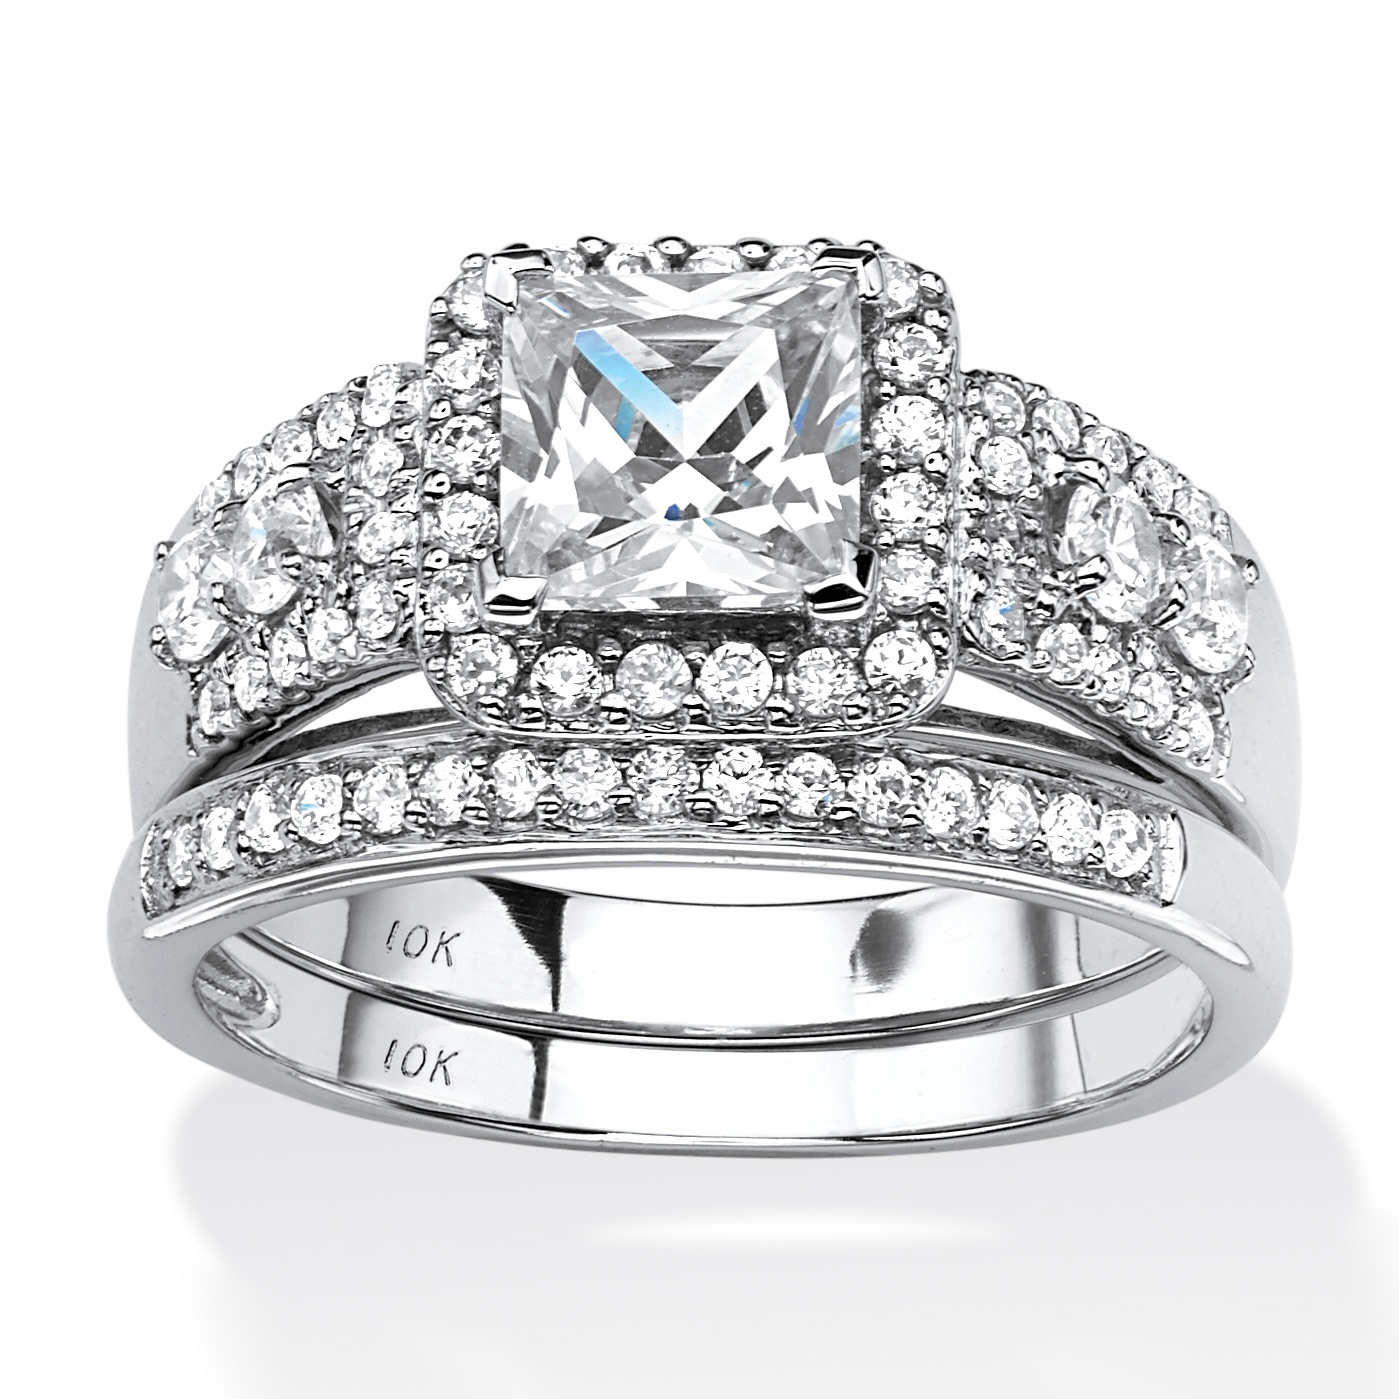 1.85 TCW Princess-Cut Cubic Zirconia Two-Piece Halo Bridal Set in 10k White Gold